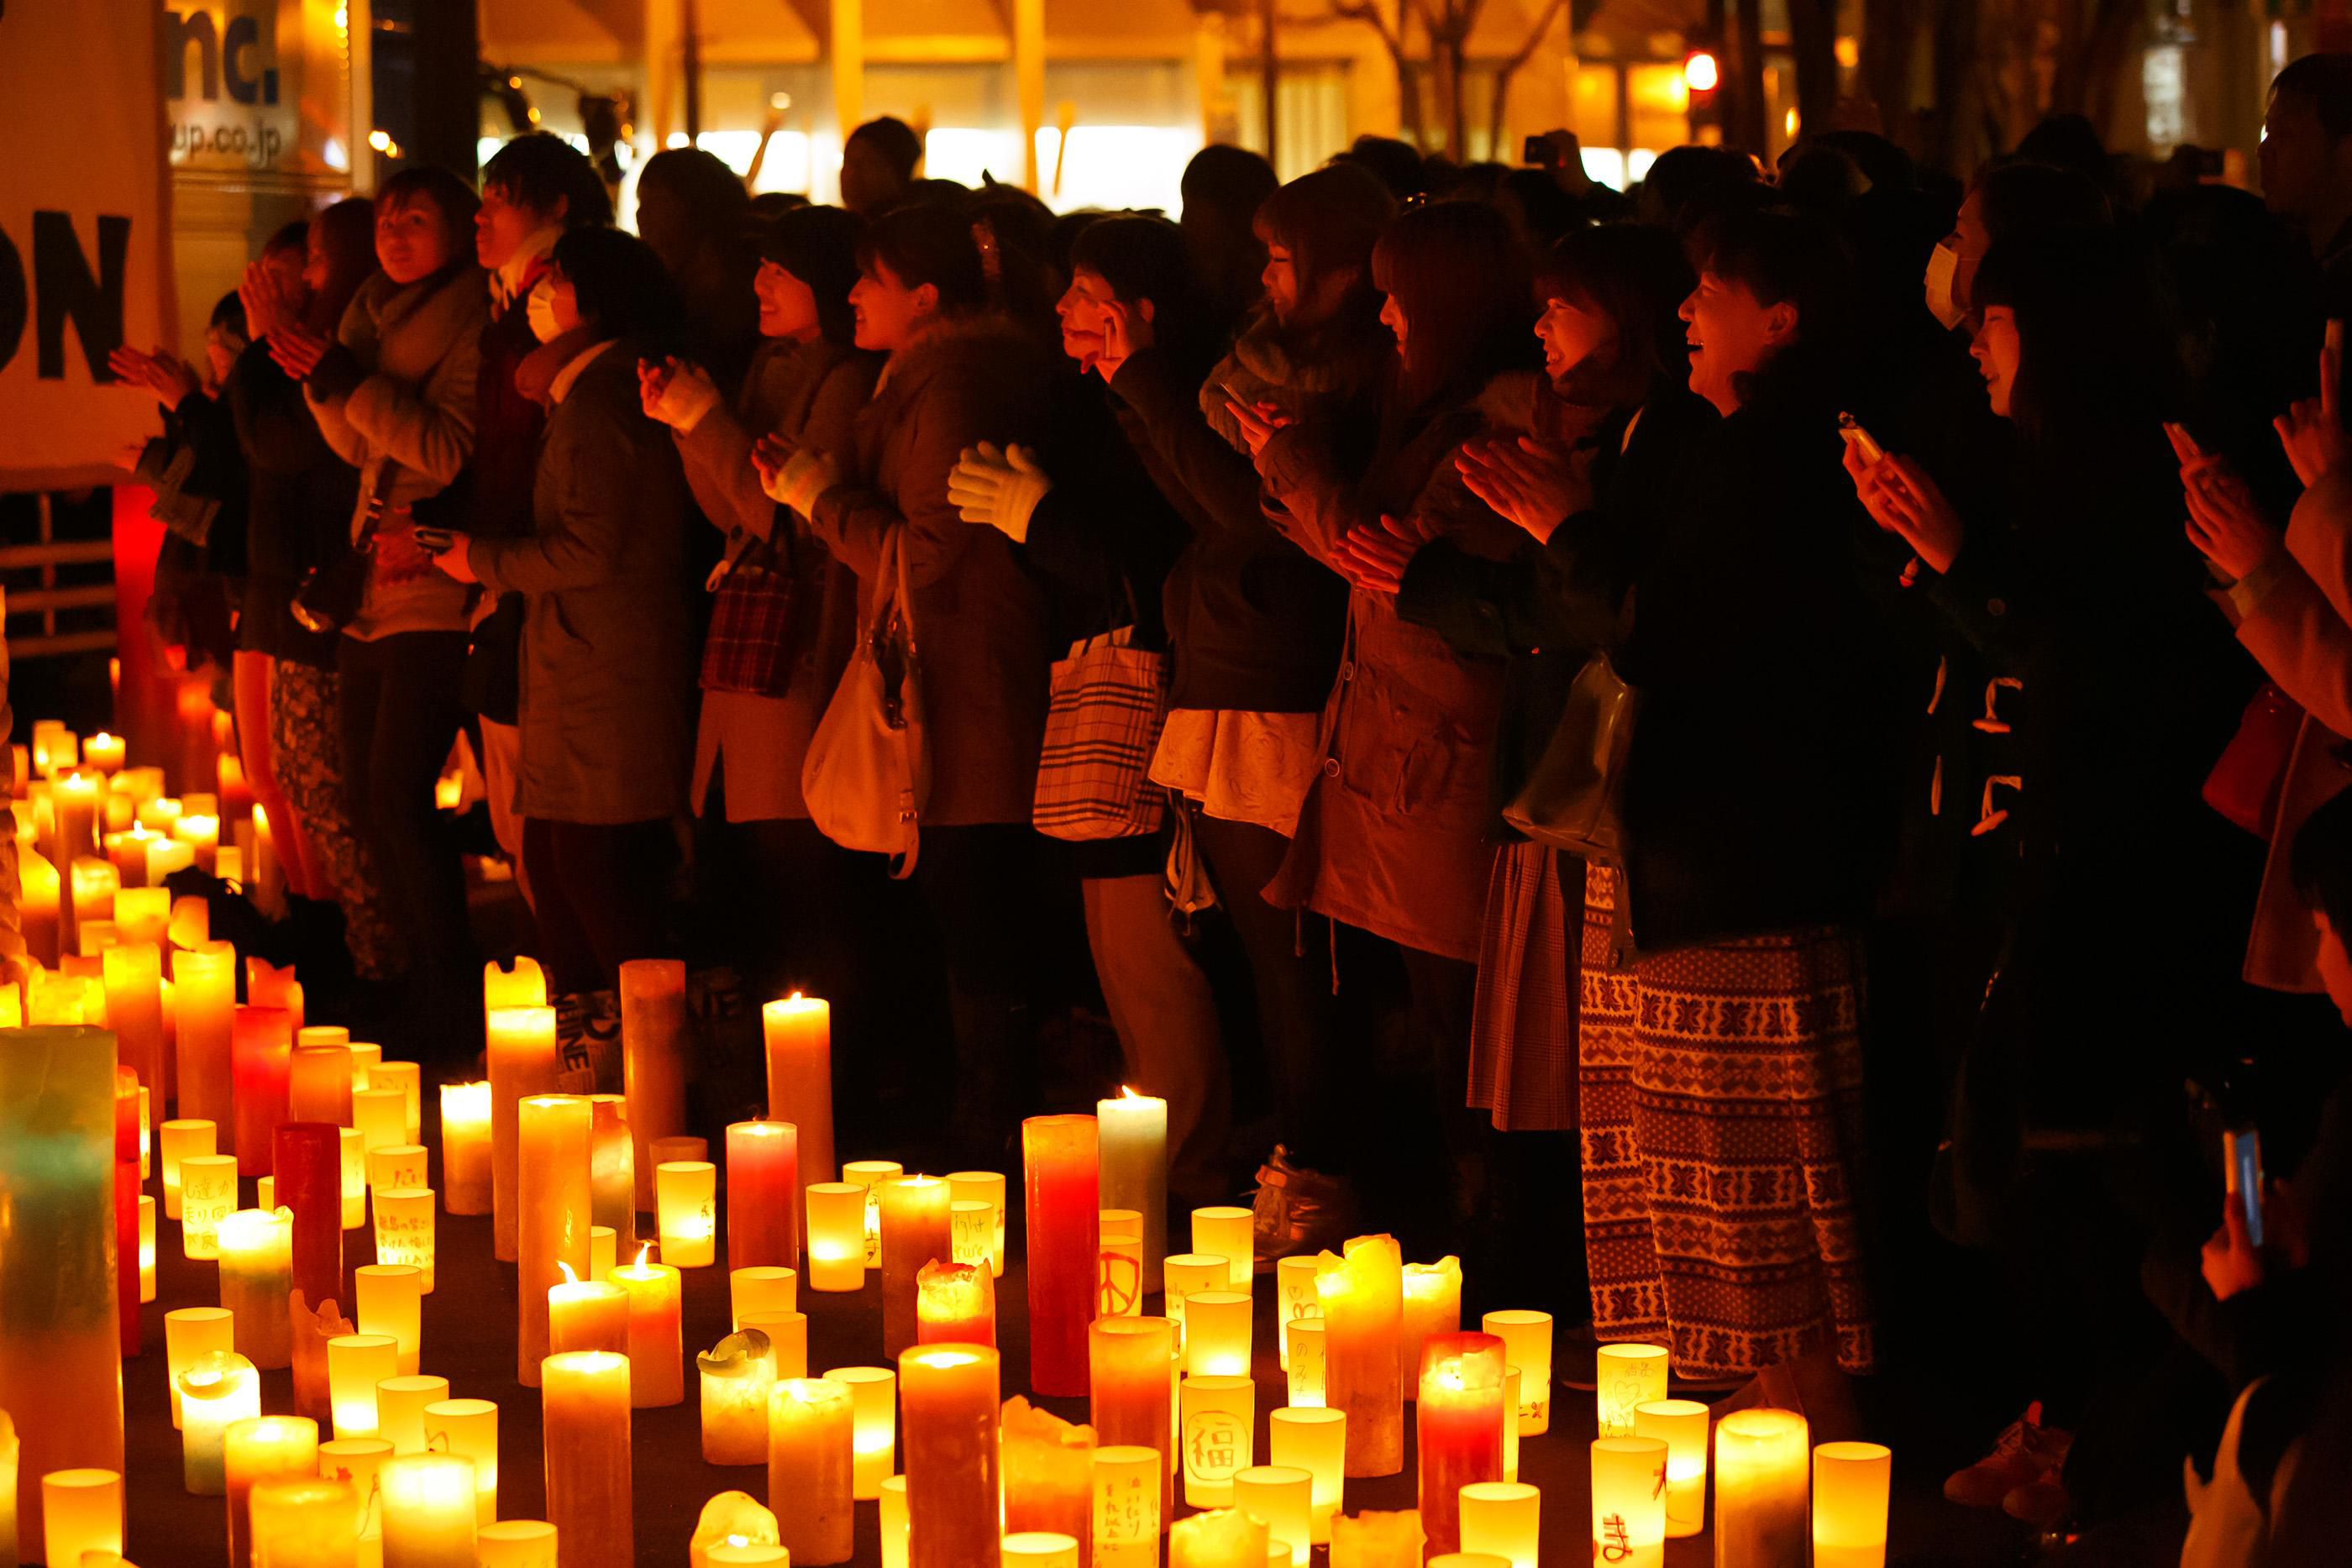 """Many people are offering prayers for the victims of the Great East Japan Earthquake - A scene at """"Candle Night,"""" held in Fukushima (Photo: Business Wire)"""